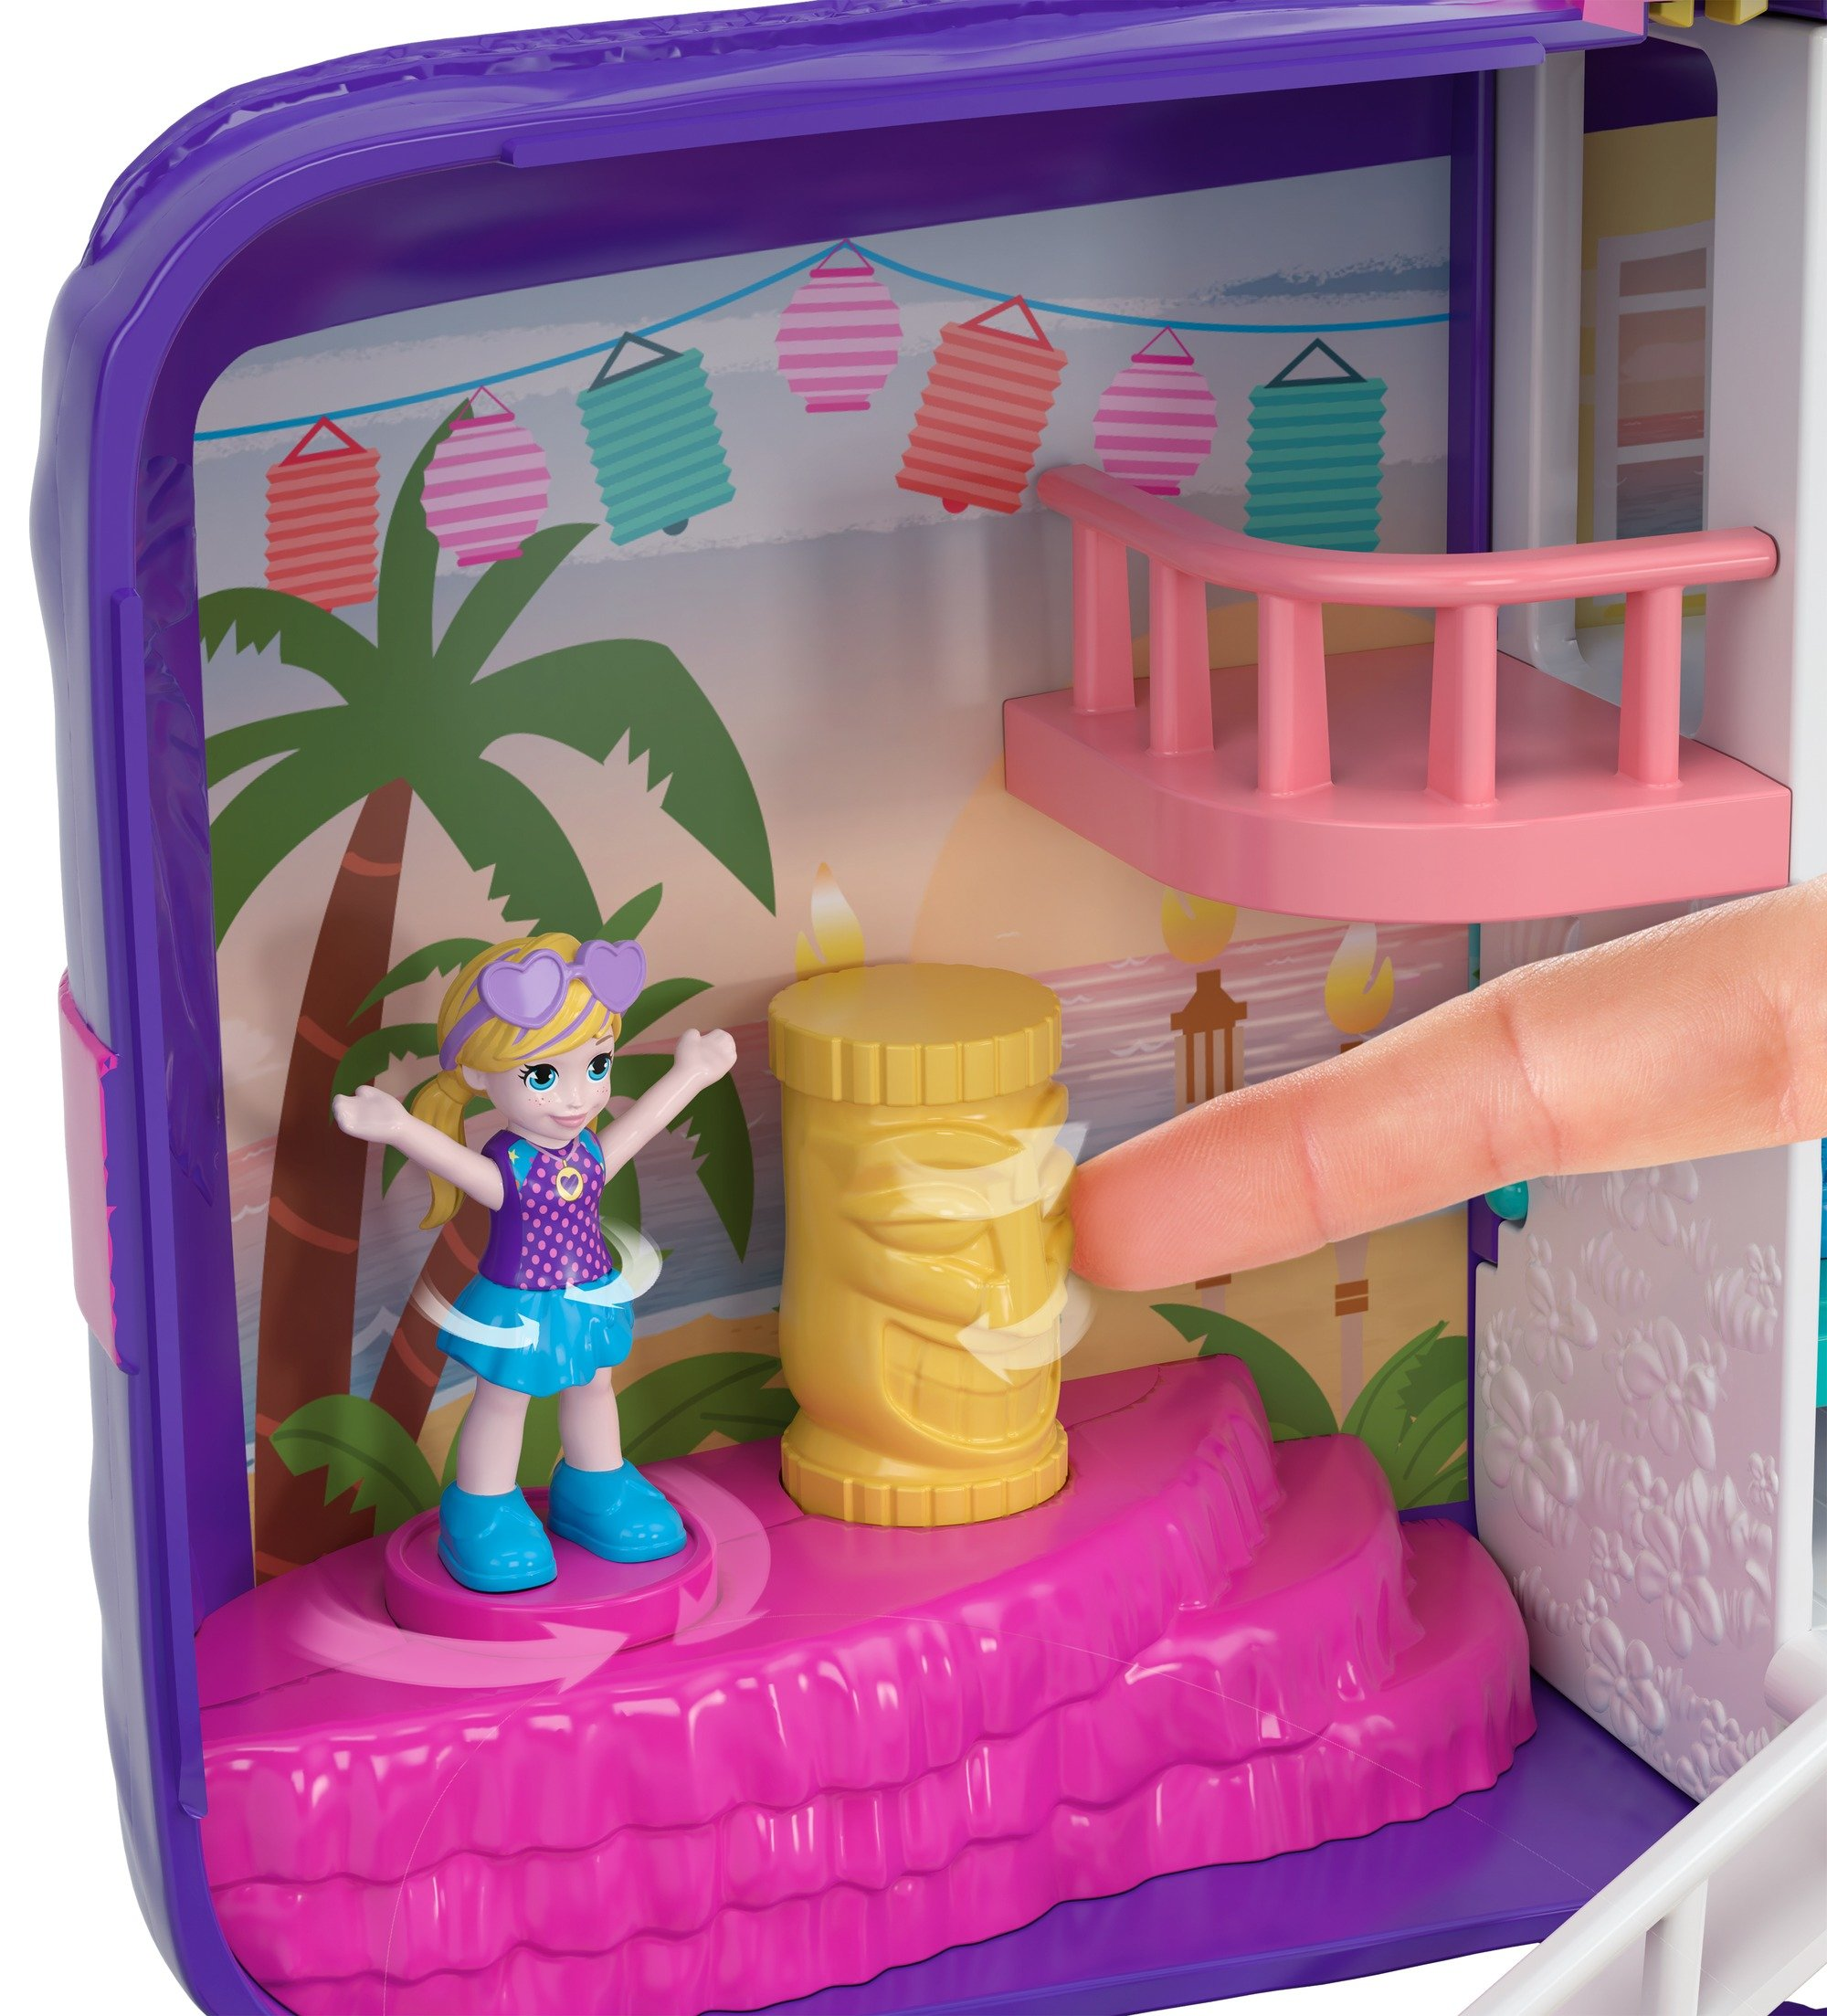 Polly Pocket Beach Vibes Figure, Multicolor by Polly Pocket (Image #2)